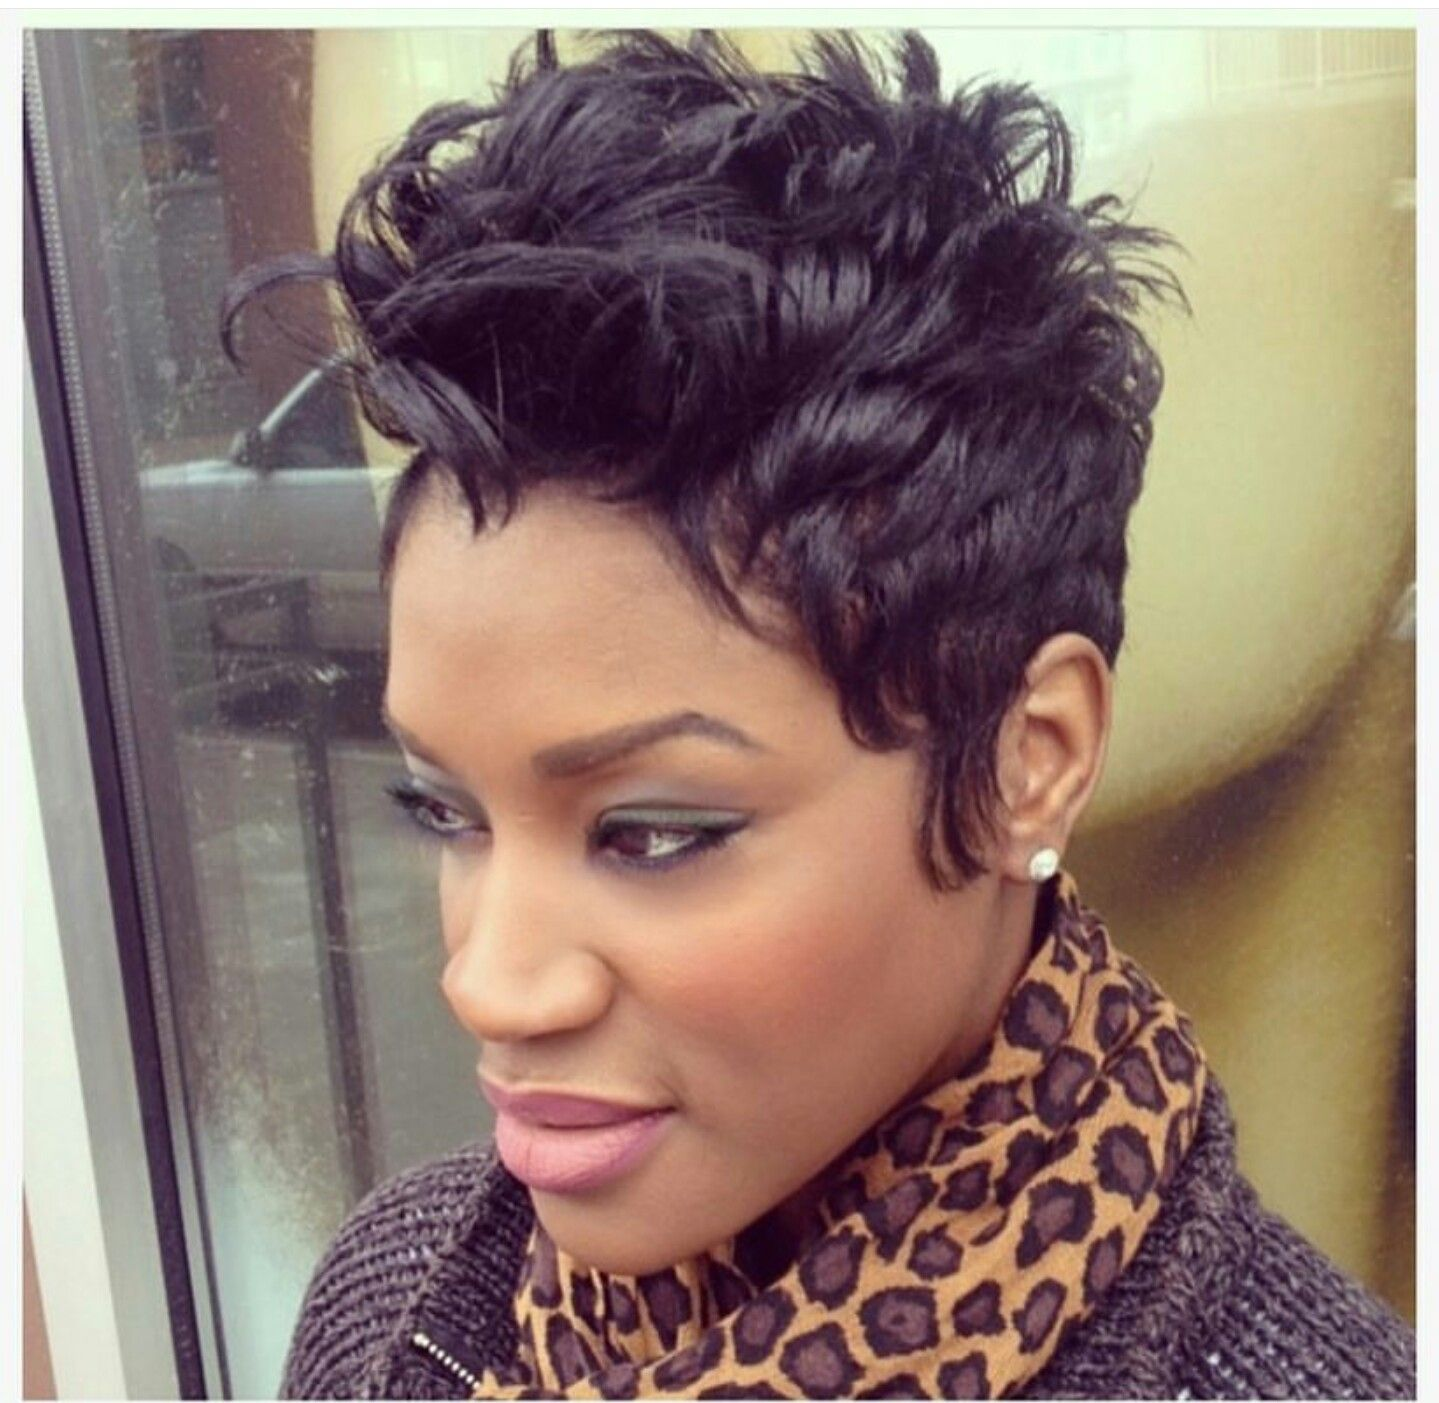 5 Awesome Things You Can Learn From Atl Hairstyles Atl Hairstyles